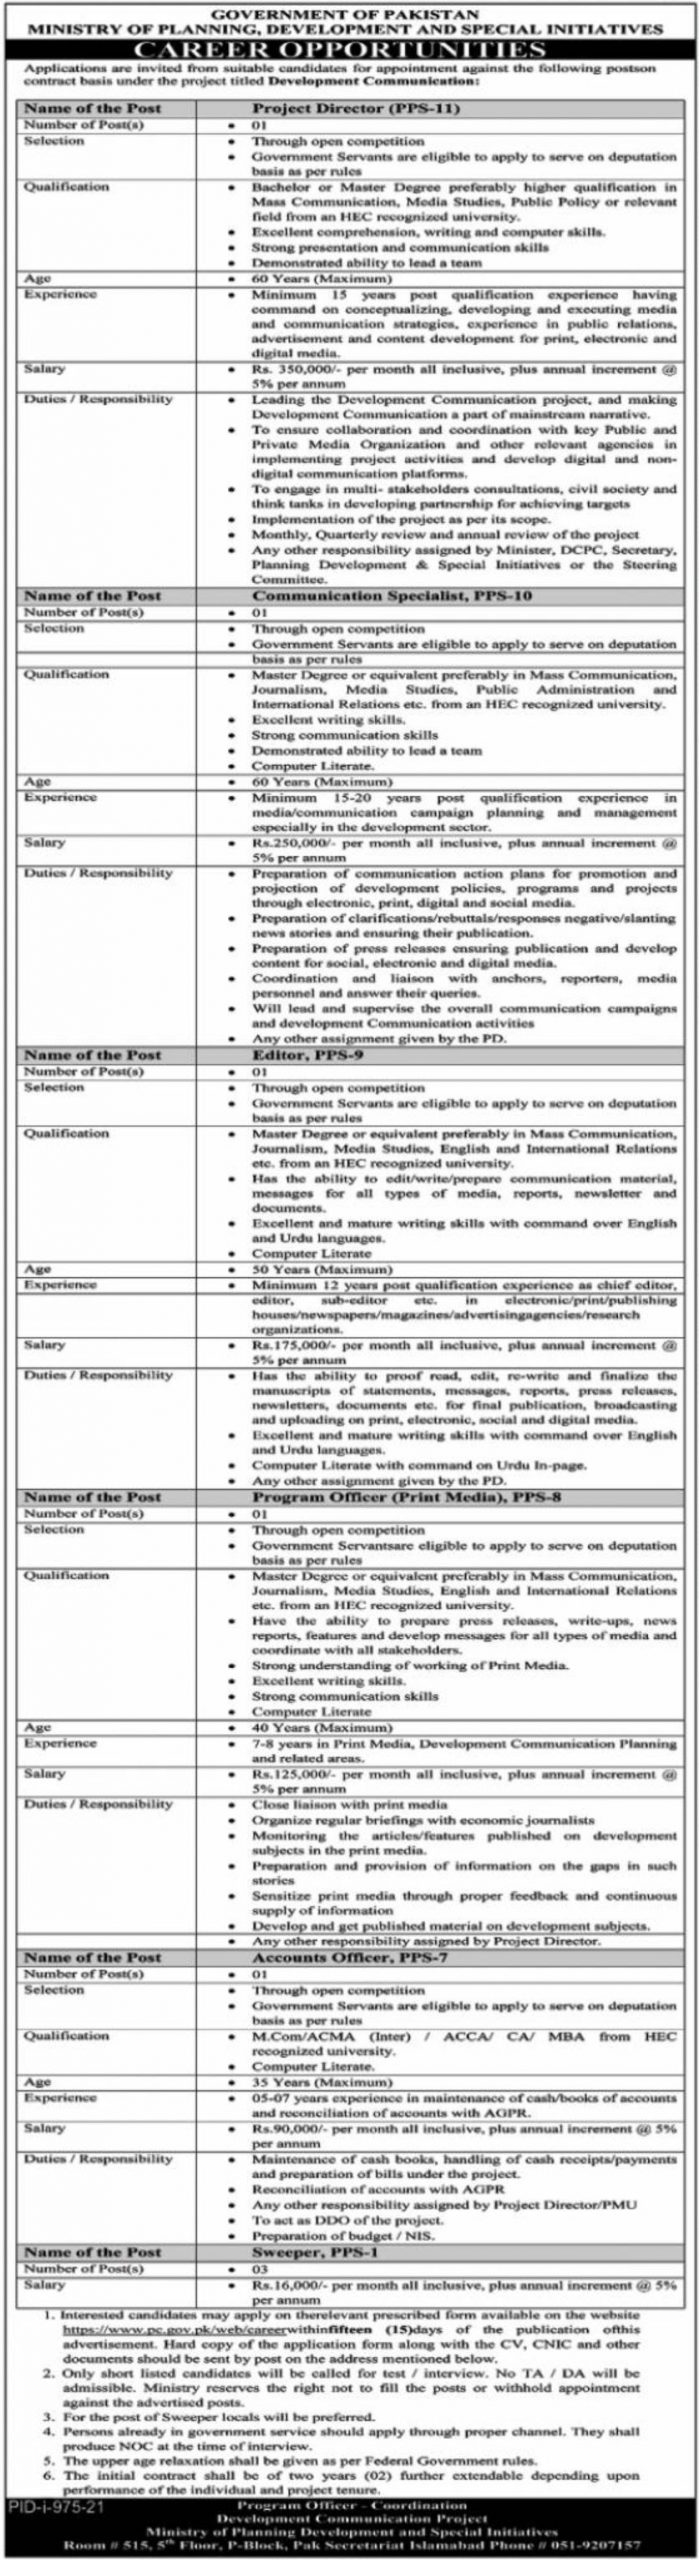 Ministry of Planning Jobs 2021 – Latest Advertisement